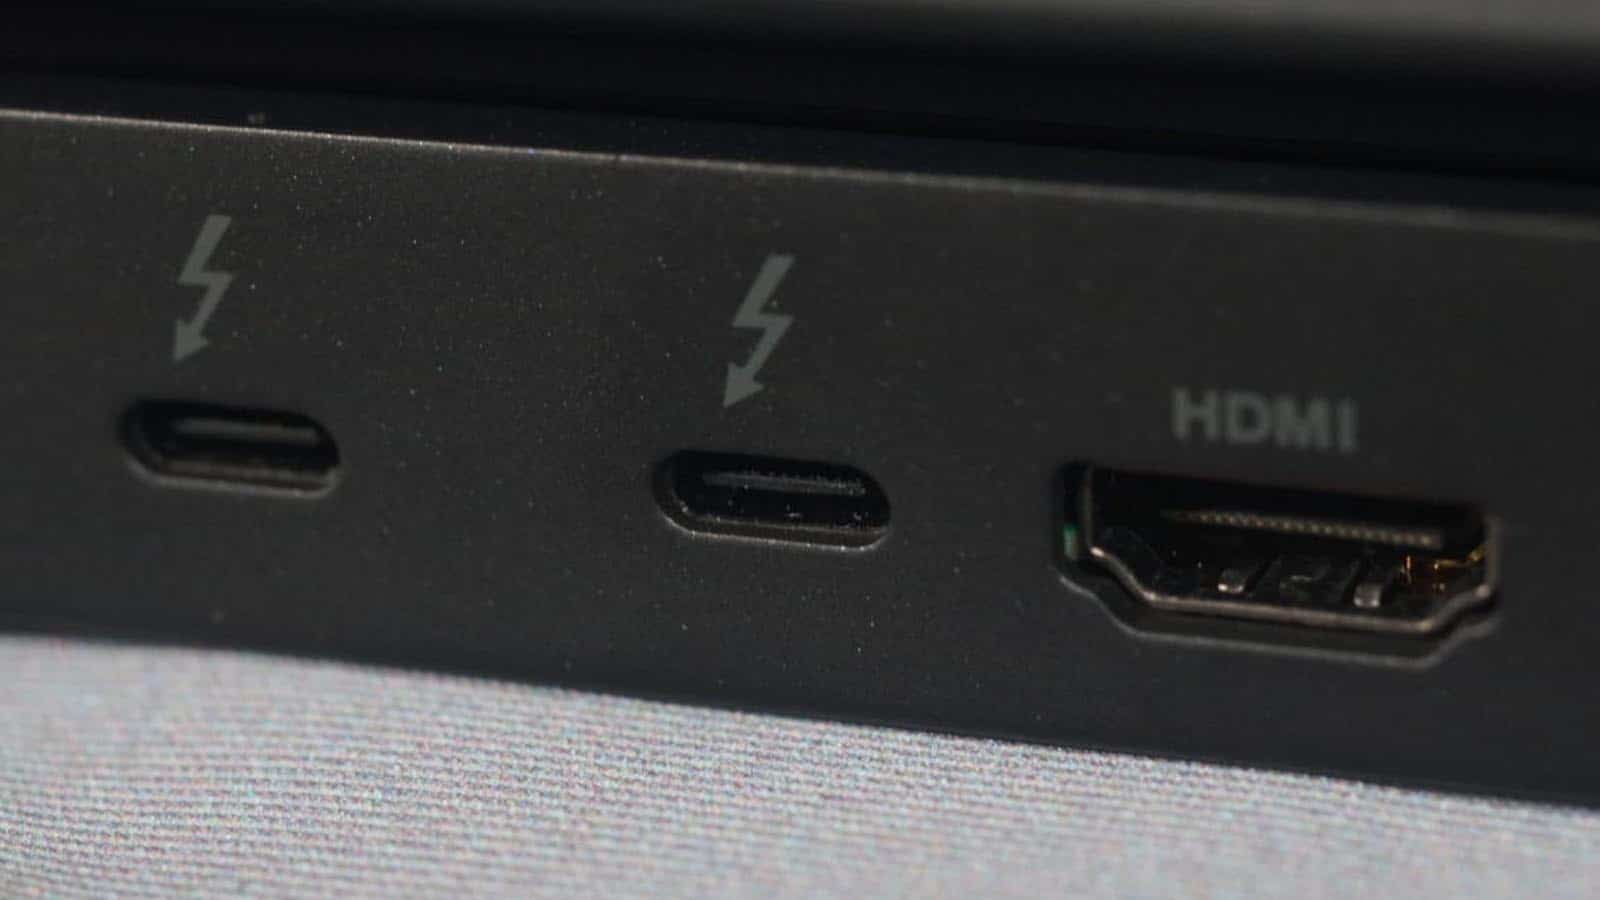 thunderbolt ports on computer